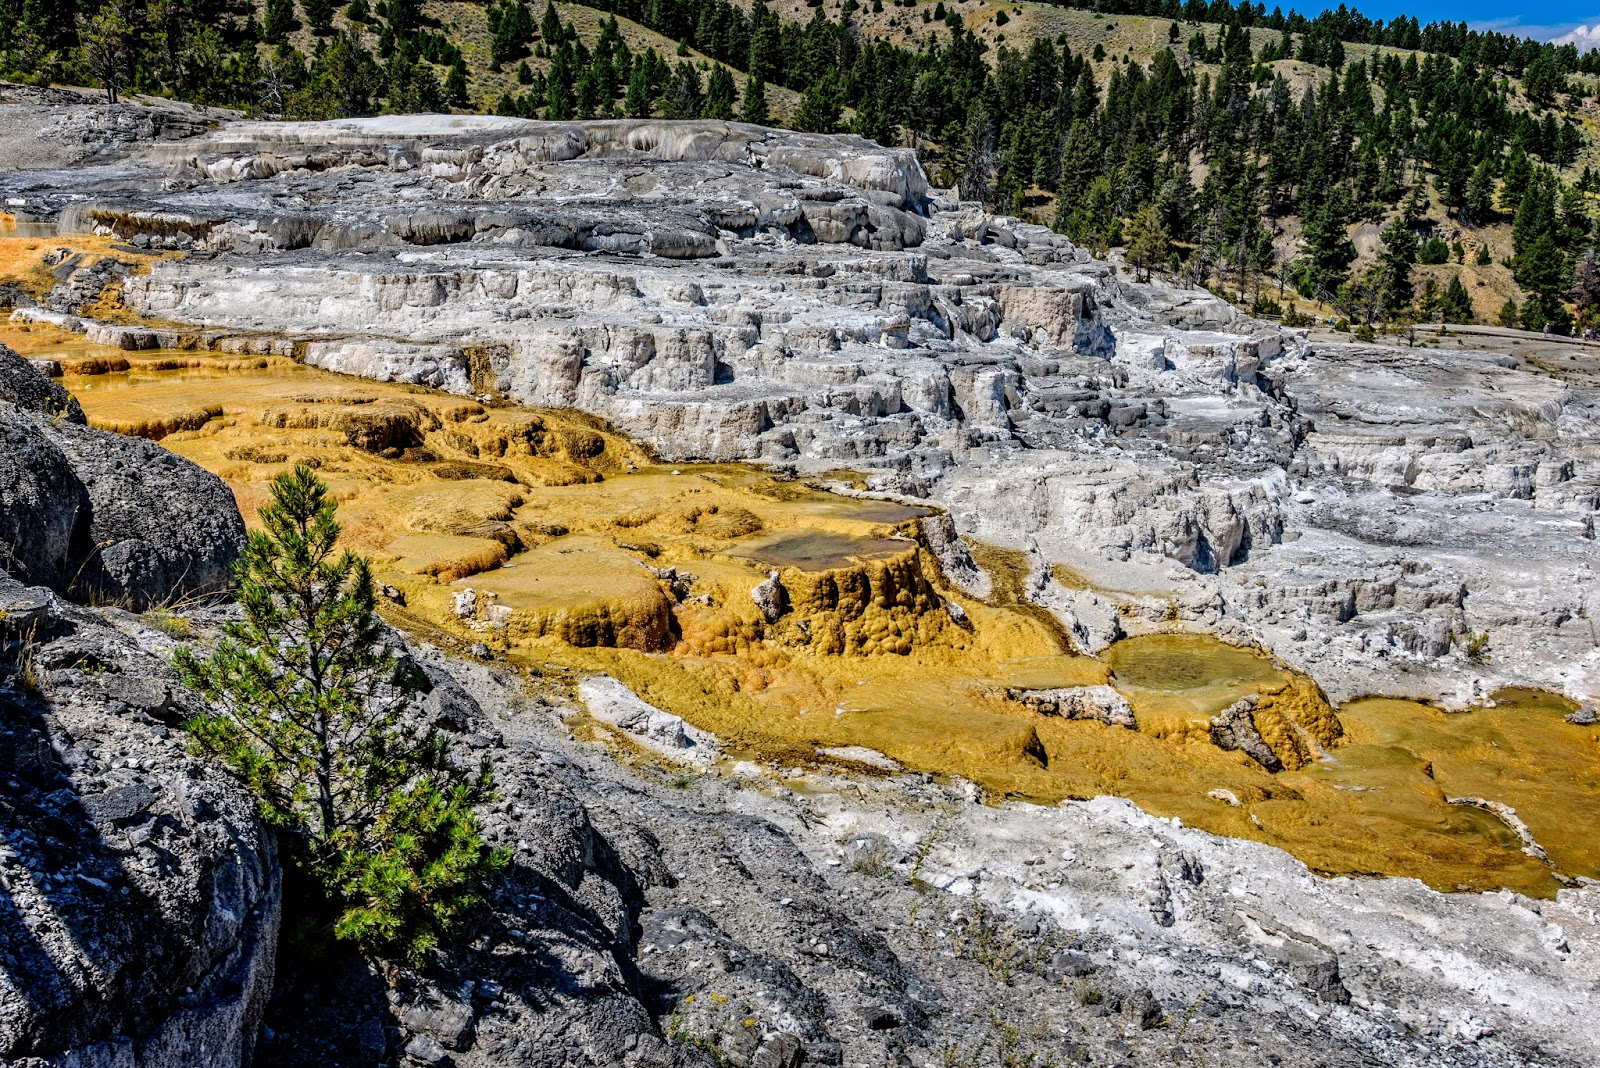 Binnshire backpacks and beer wyoming august 10 17 for Minerva terrace yellowstone